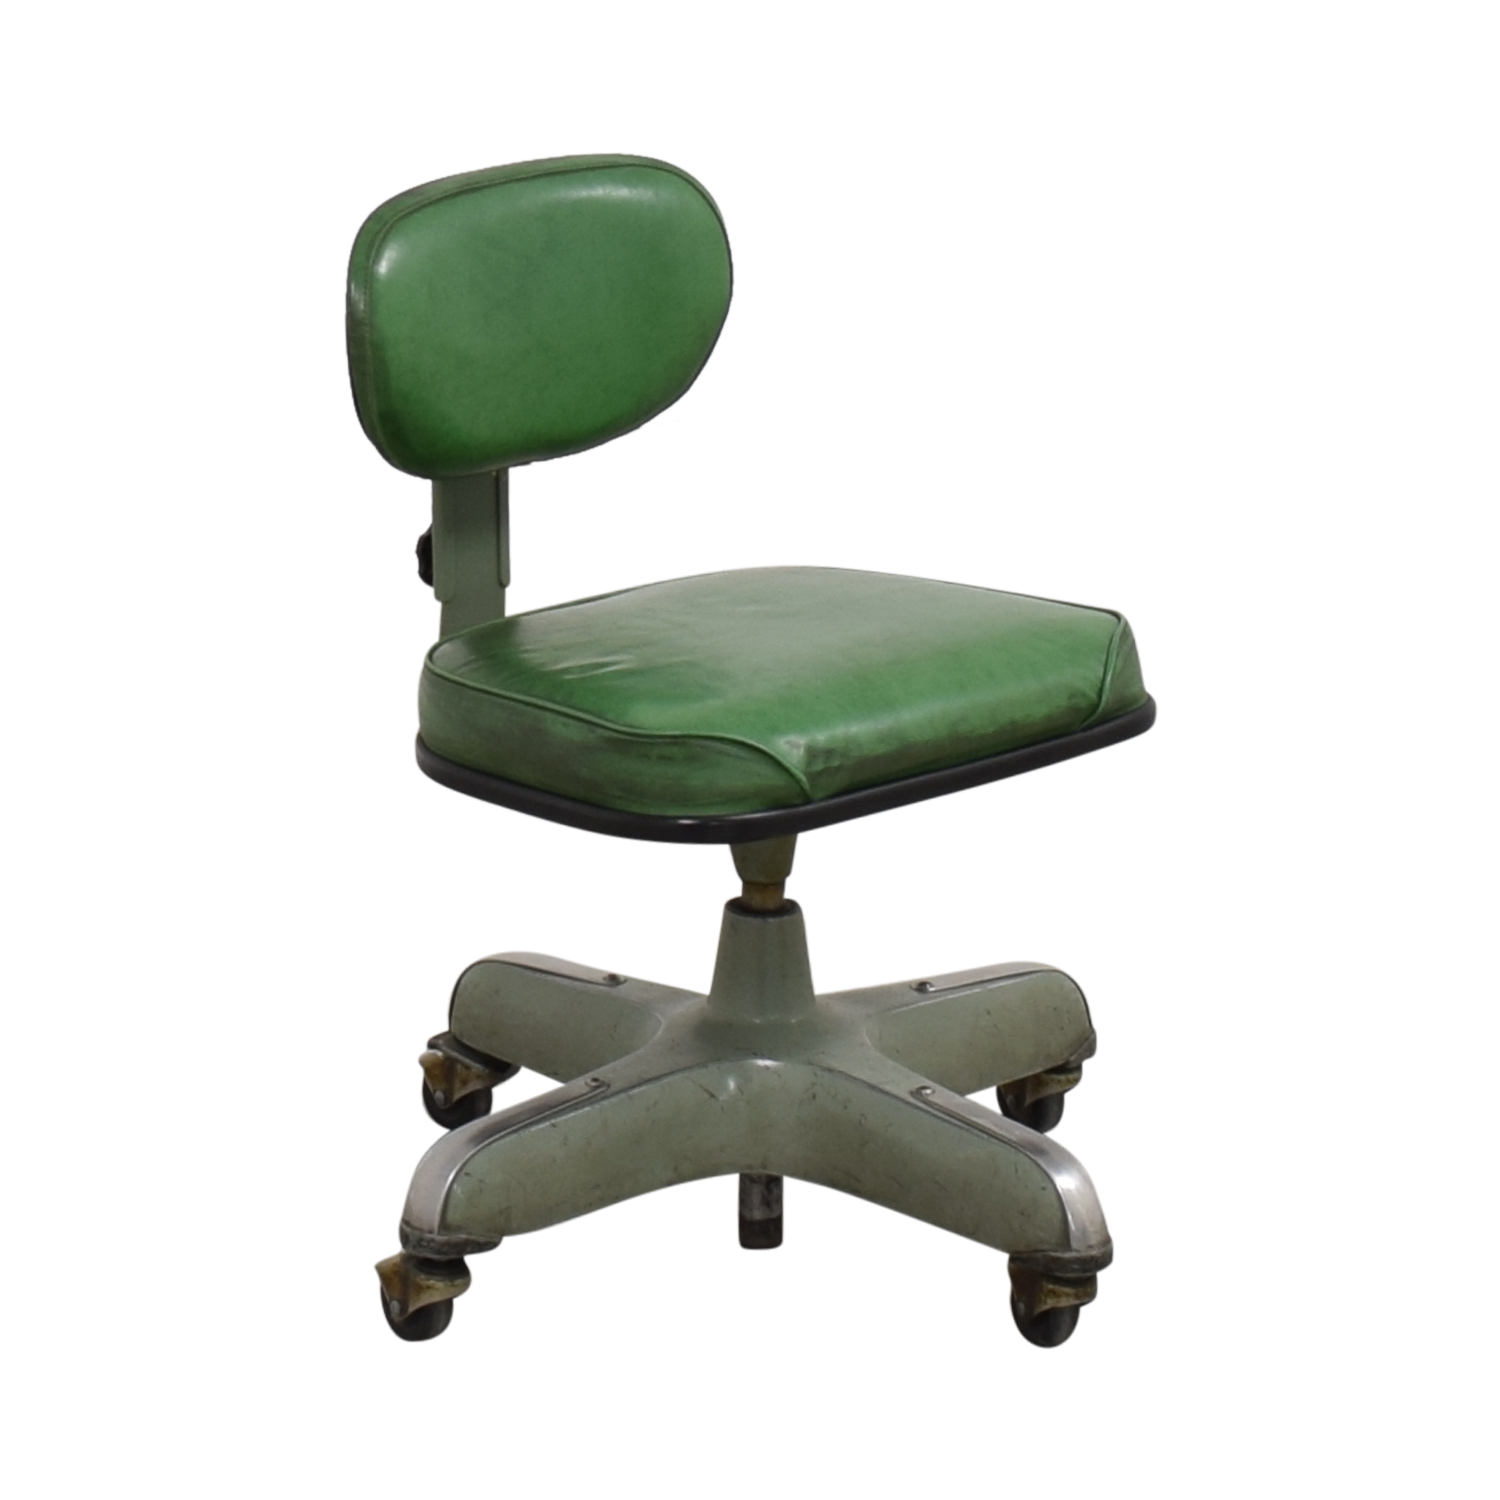 Cramer Industries Vintage Cramer Industries Swivel Office Chair Home Office Chairs